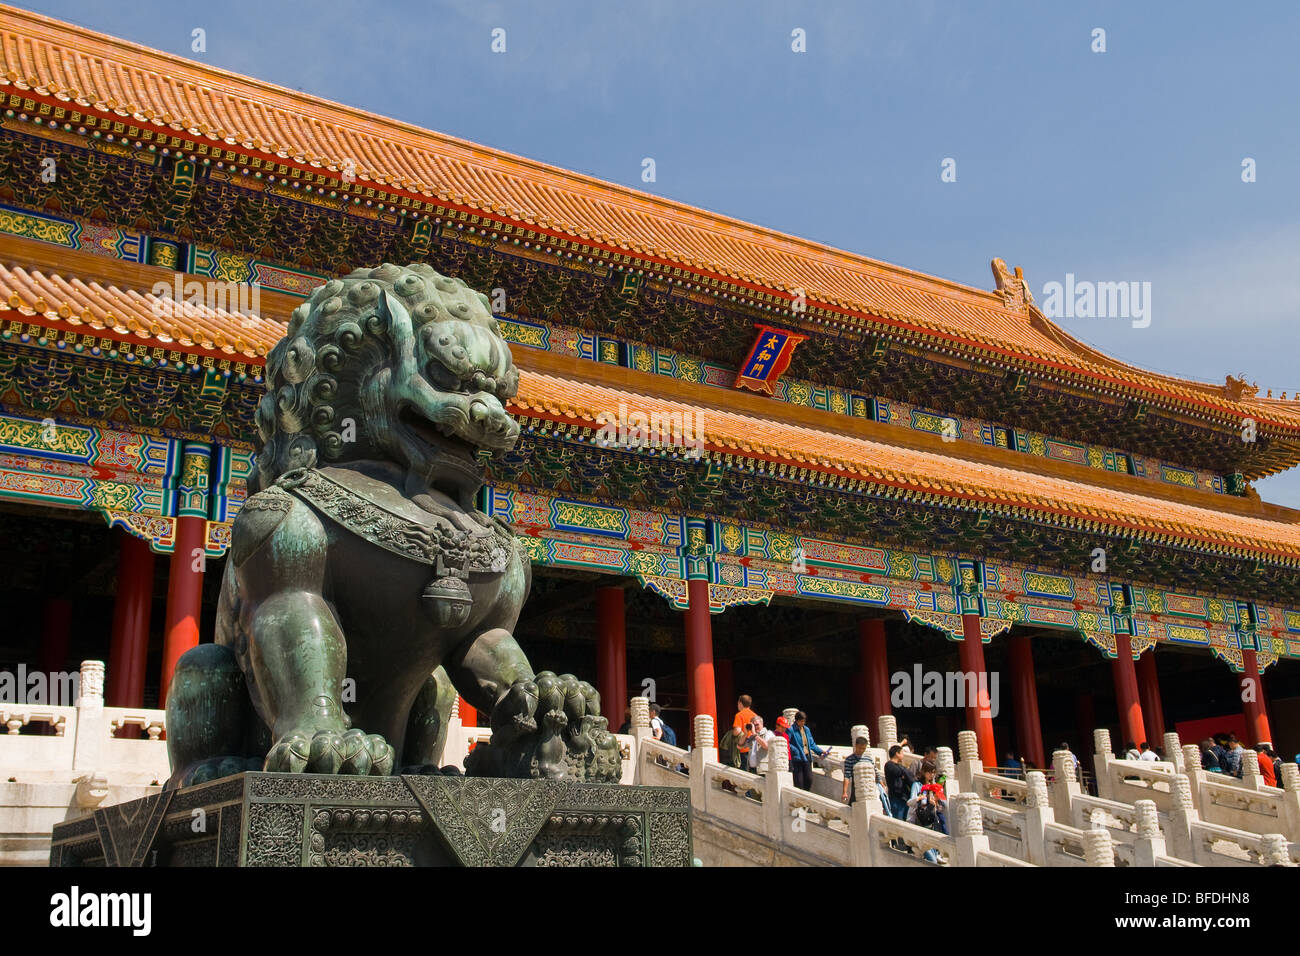 A Lion Statue At The Forbidden City Beijing China